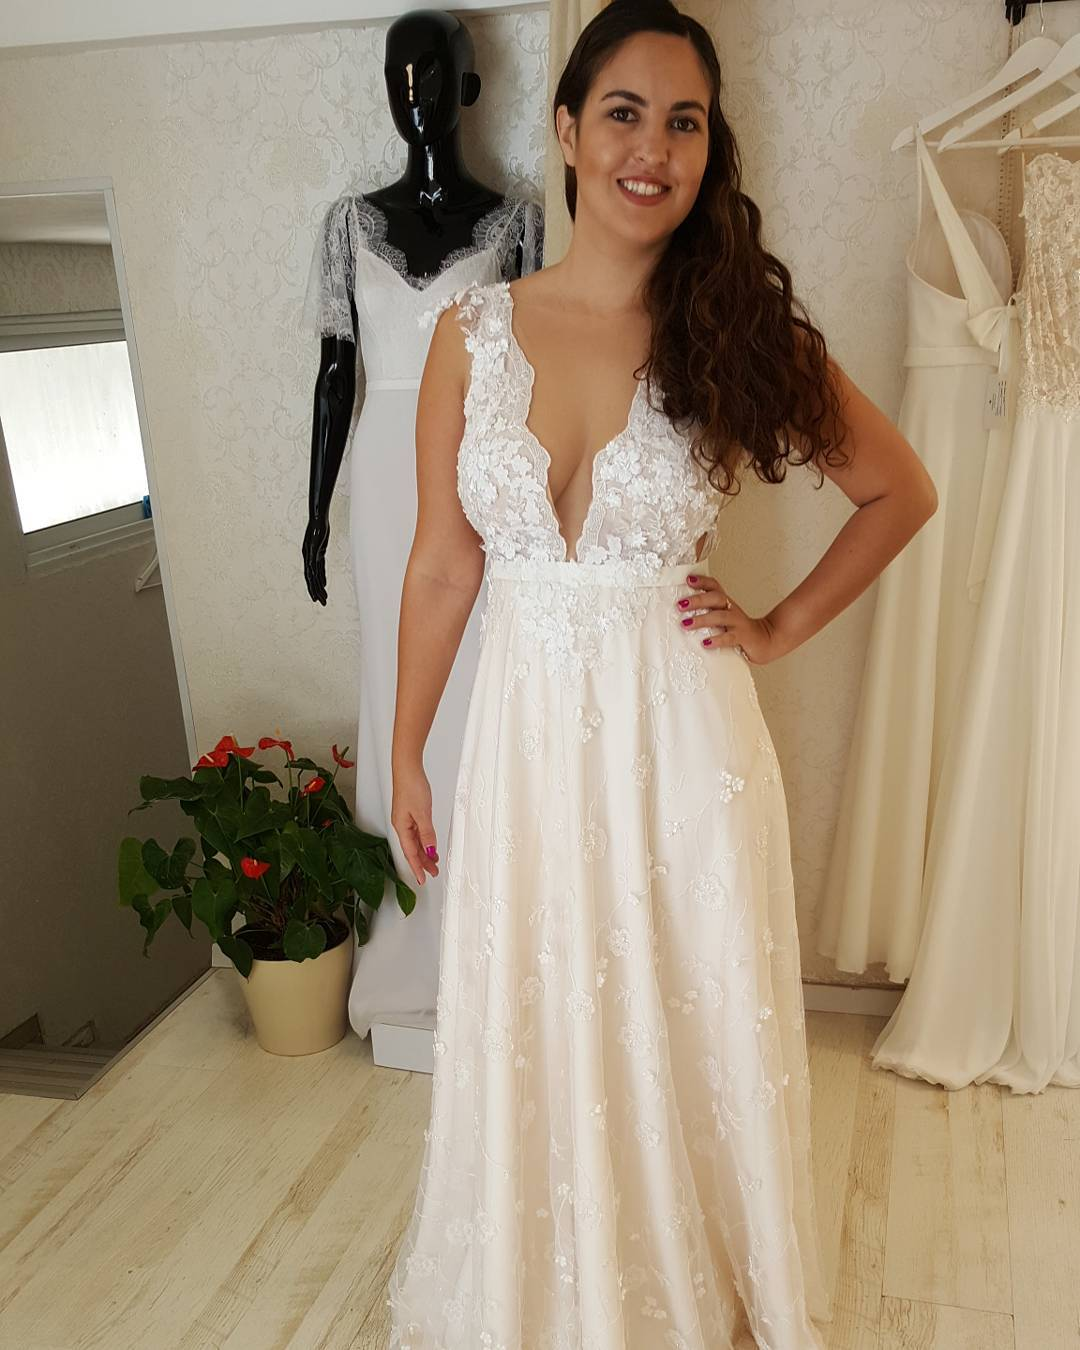 Bridal Blogger Wedding Dress Shopping For Plus Size: Deep V-neck Wedding Gowns For Curvy Plus Size